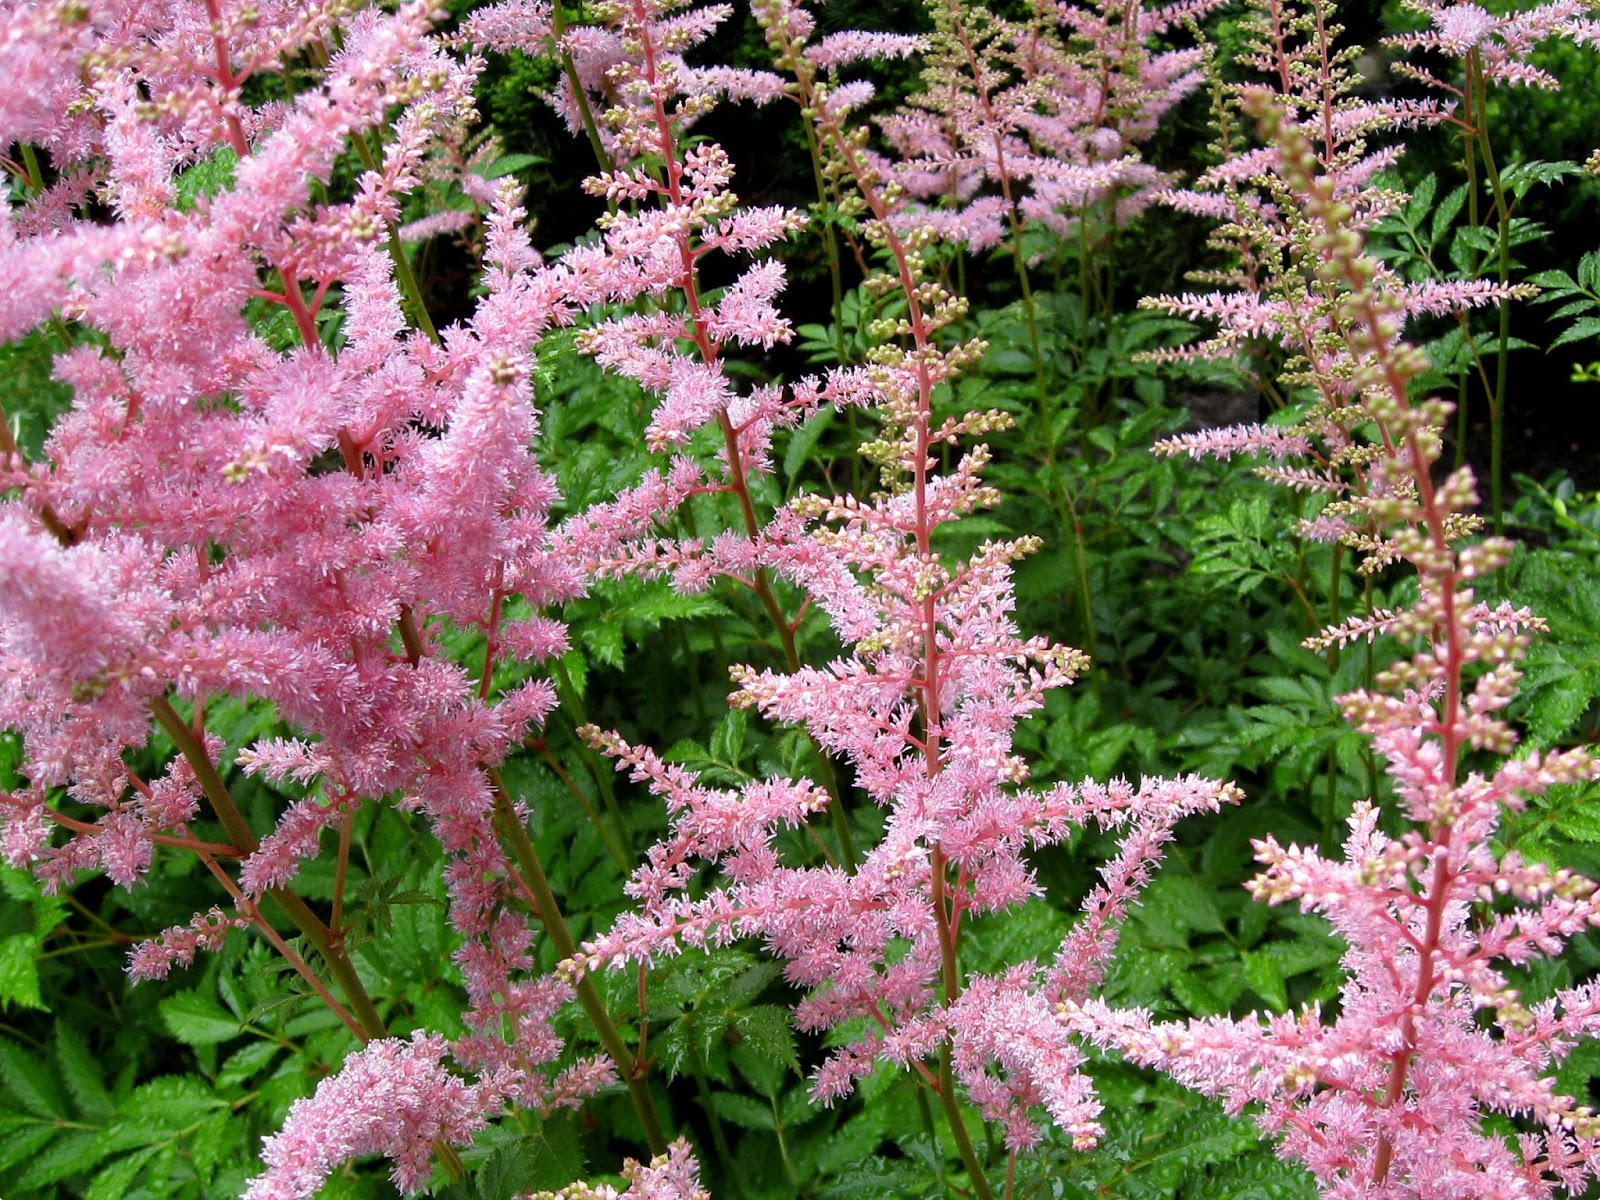 Image Astilbe_bunch.jpg free for use with attribution